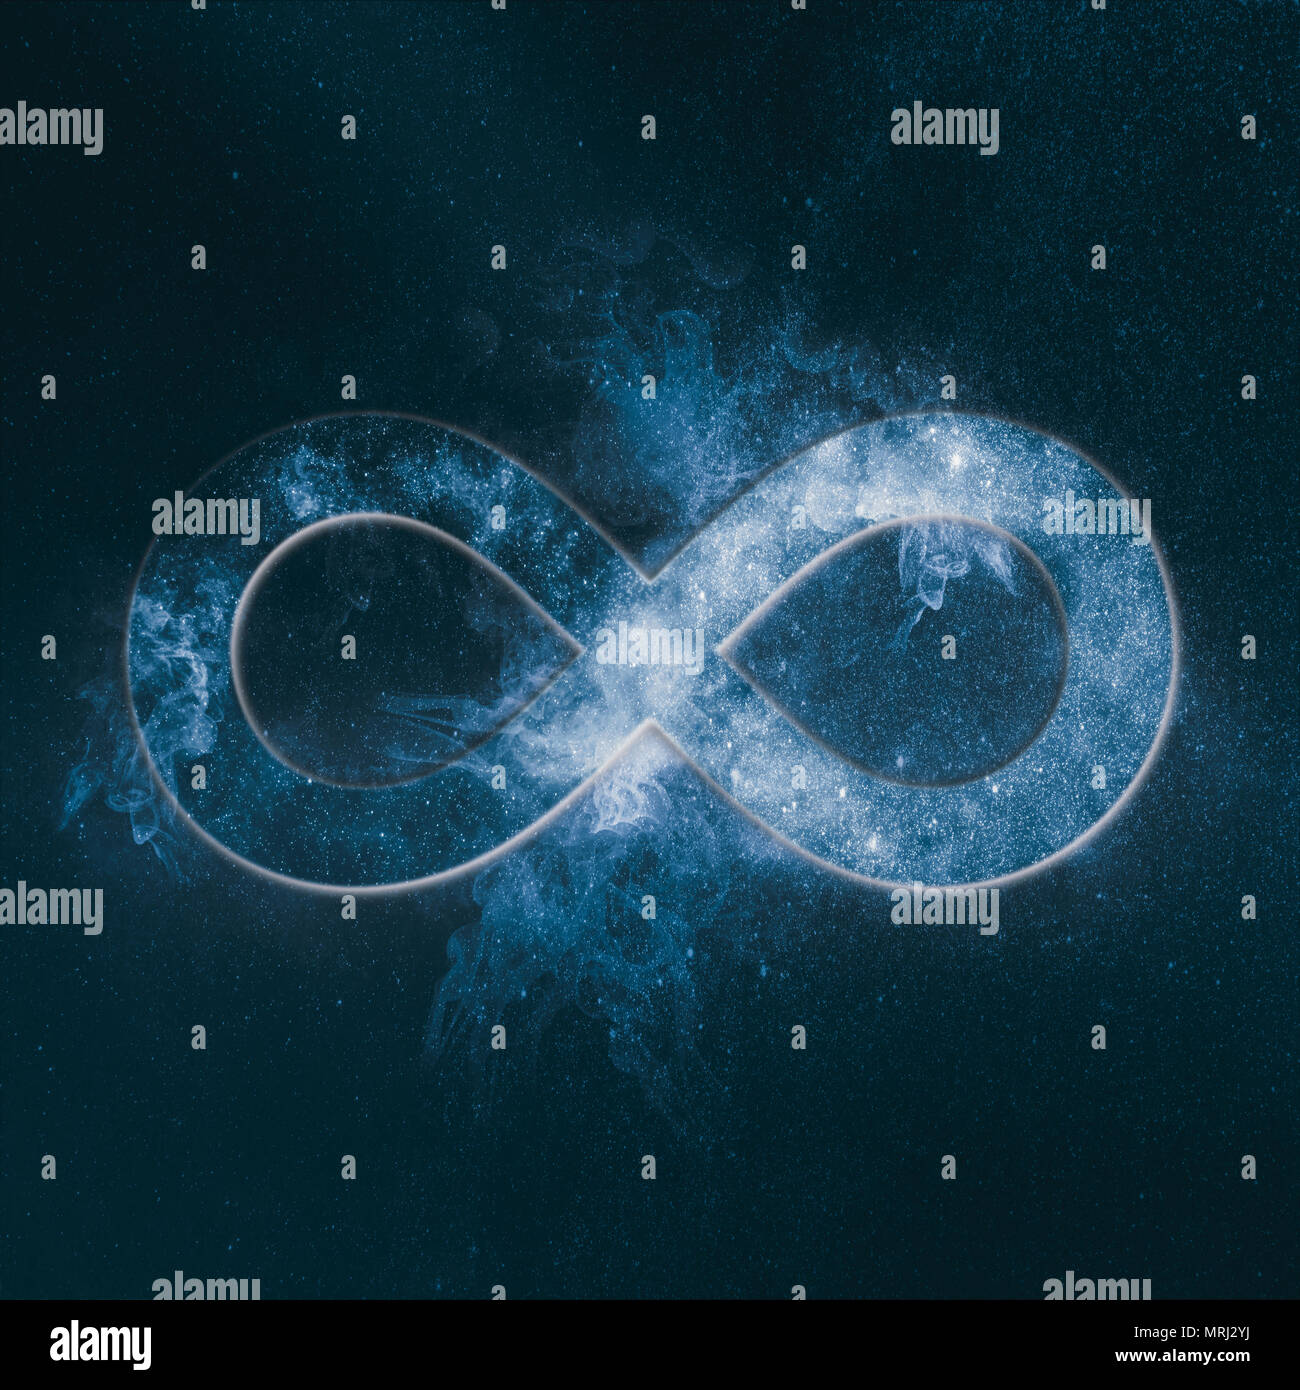 Infinity symbol or sign Abstract night sky